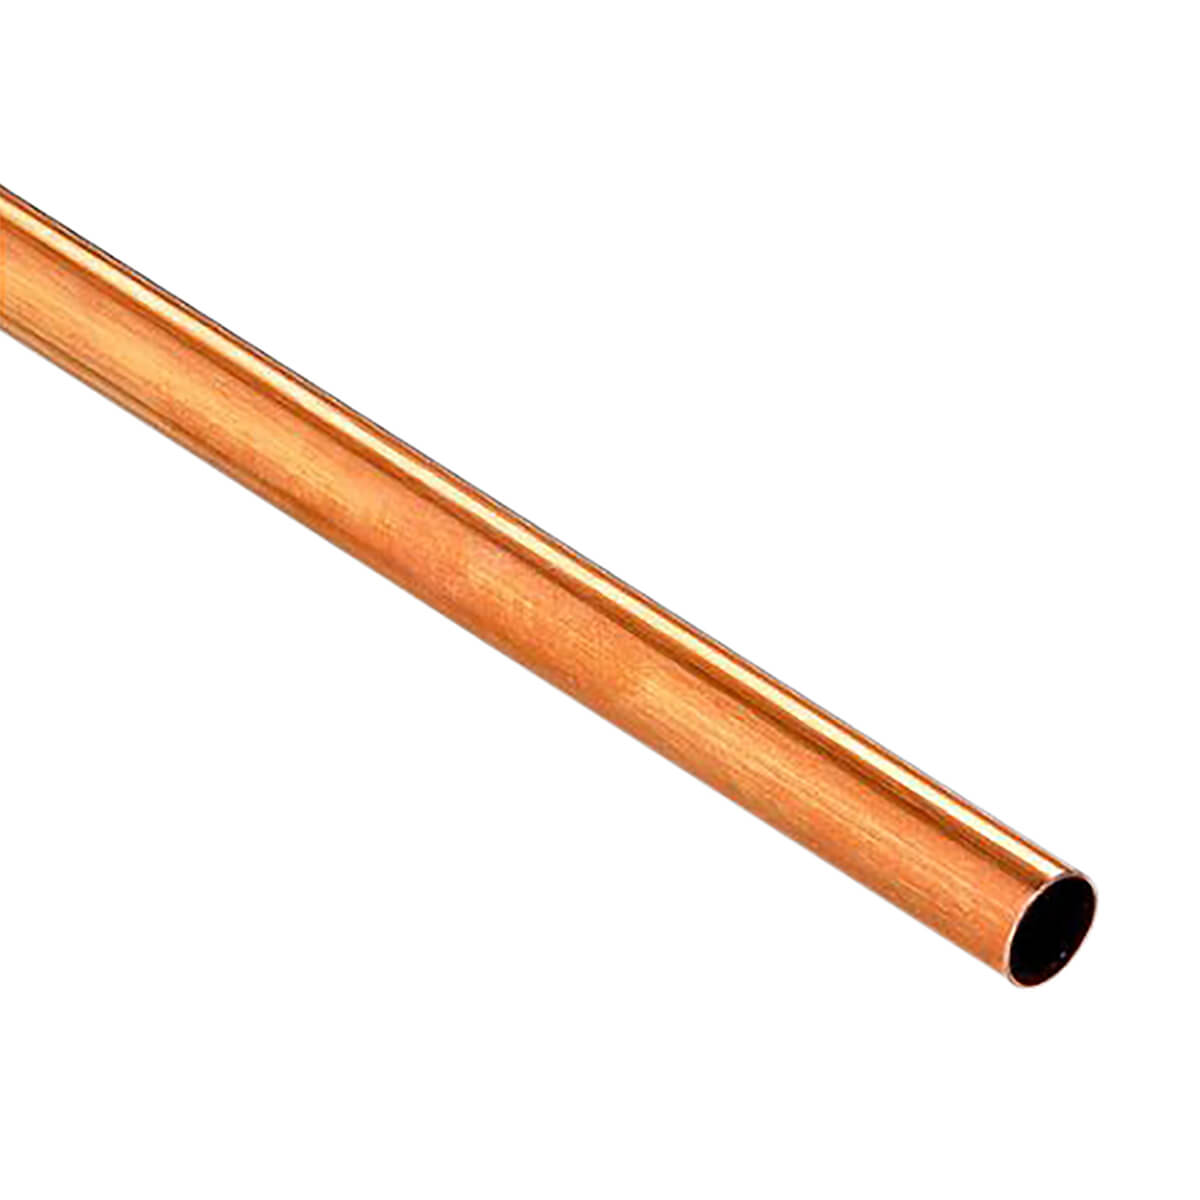 Copper Pipe Type M - 3/4-in x 12-ft